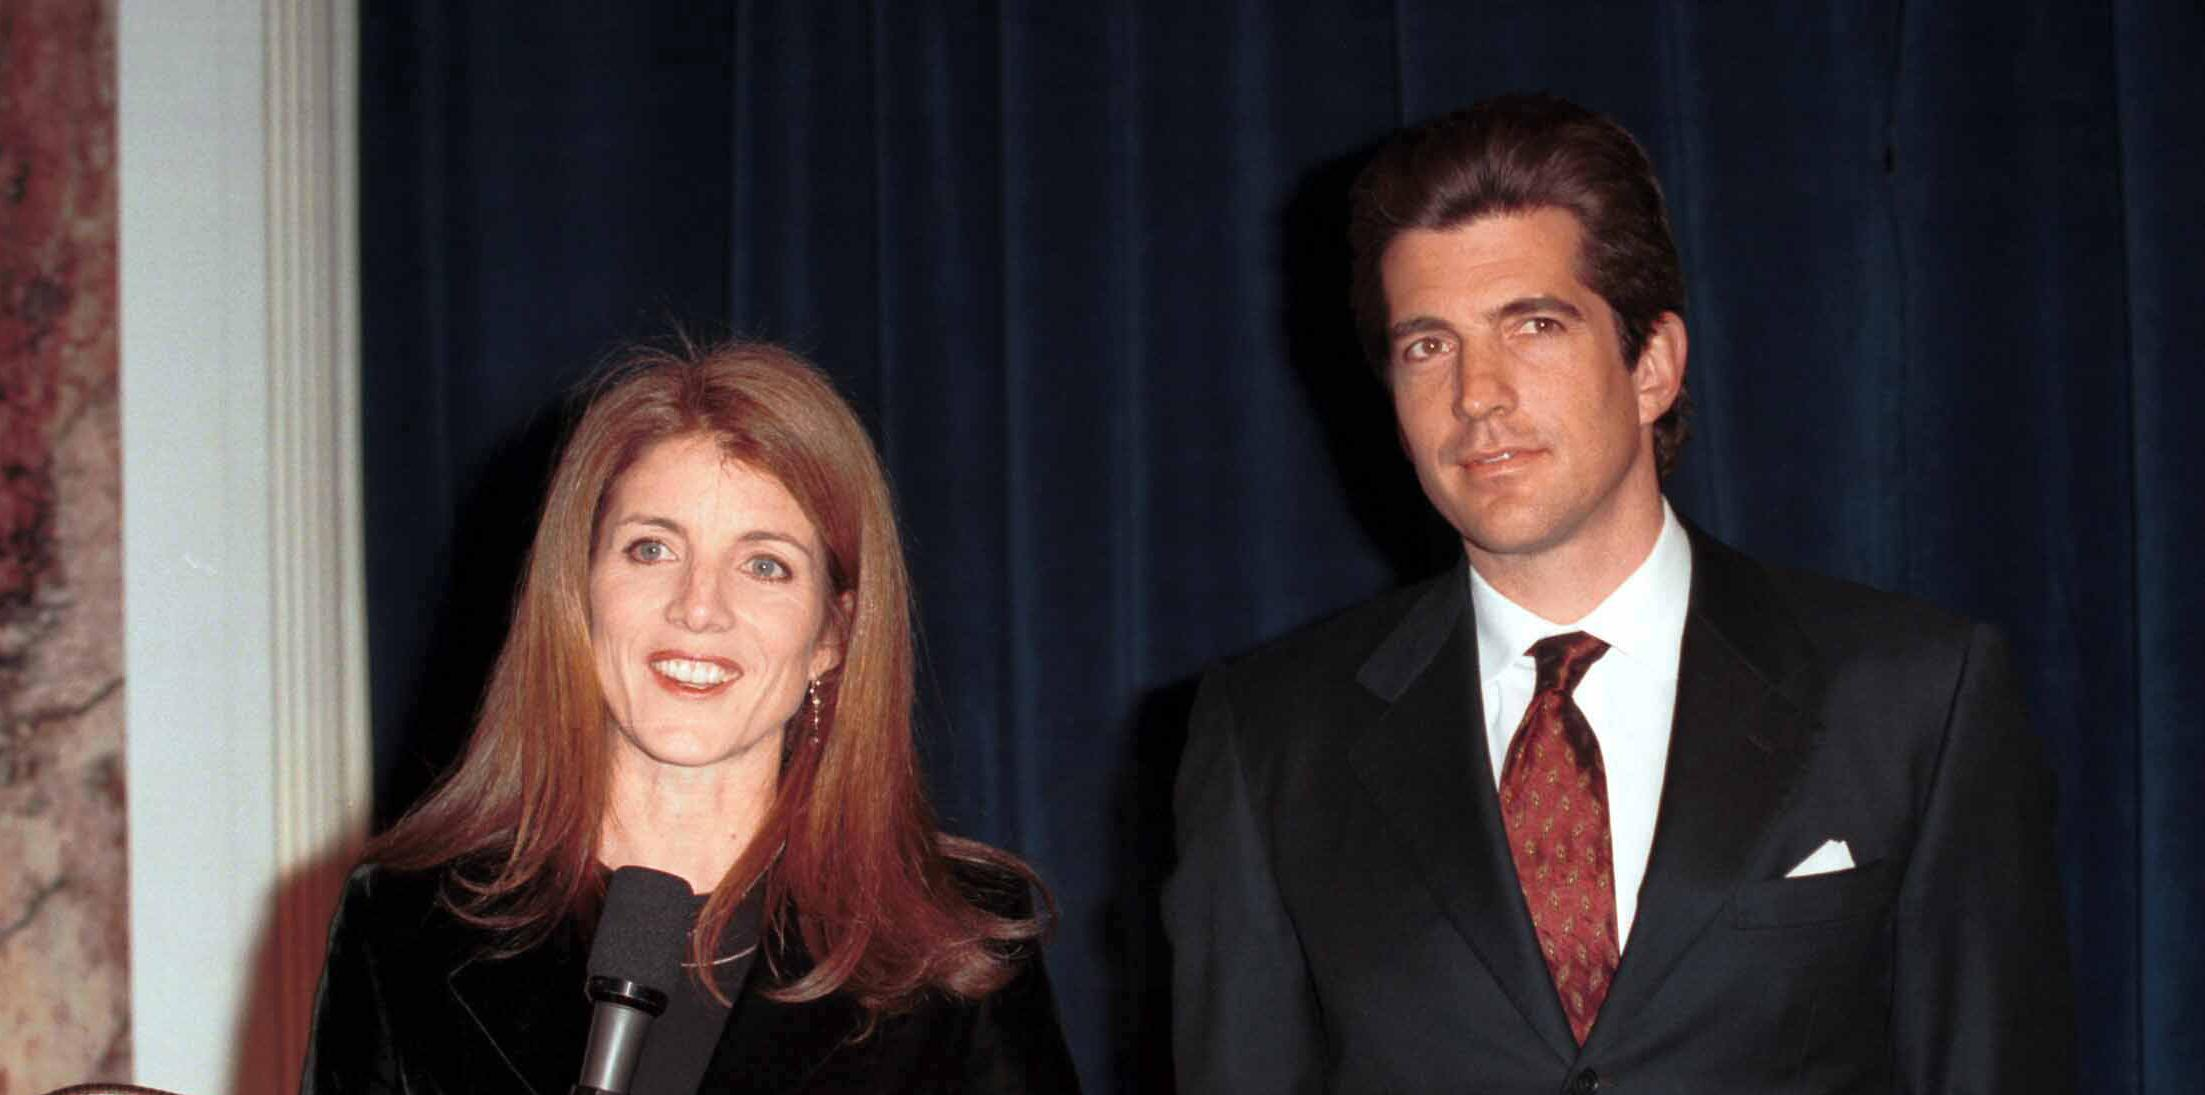 JFK Jr.'s Lifestyle May Have Made Him 'Vulnerable' to a Kidnapping Plot